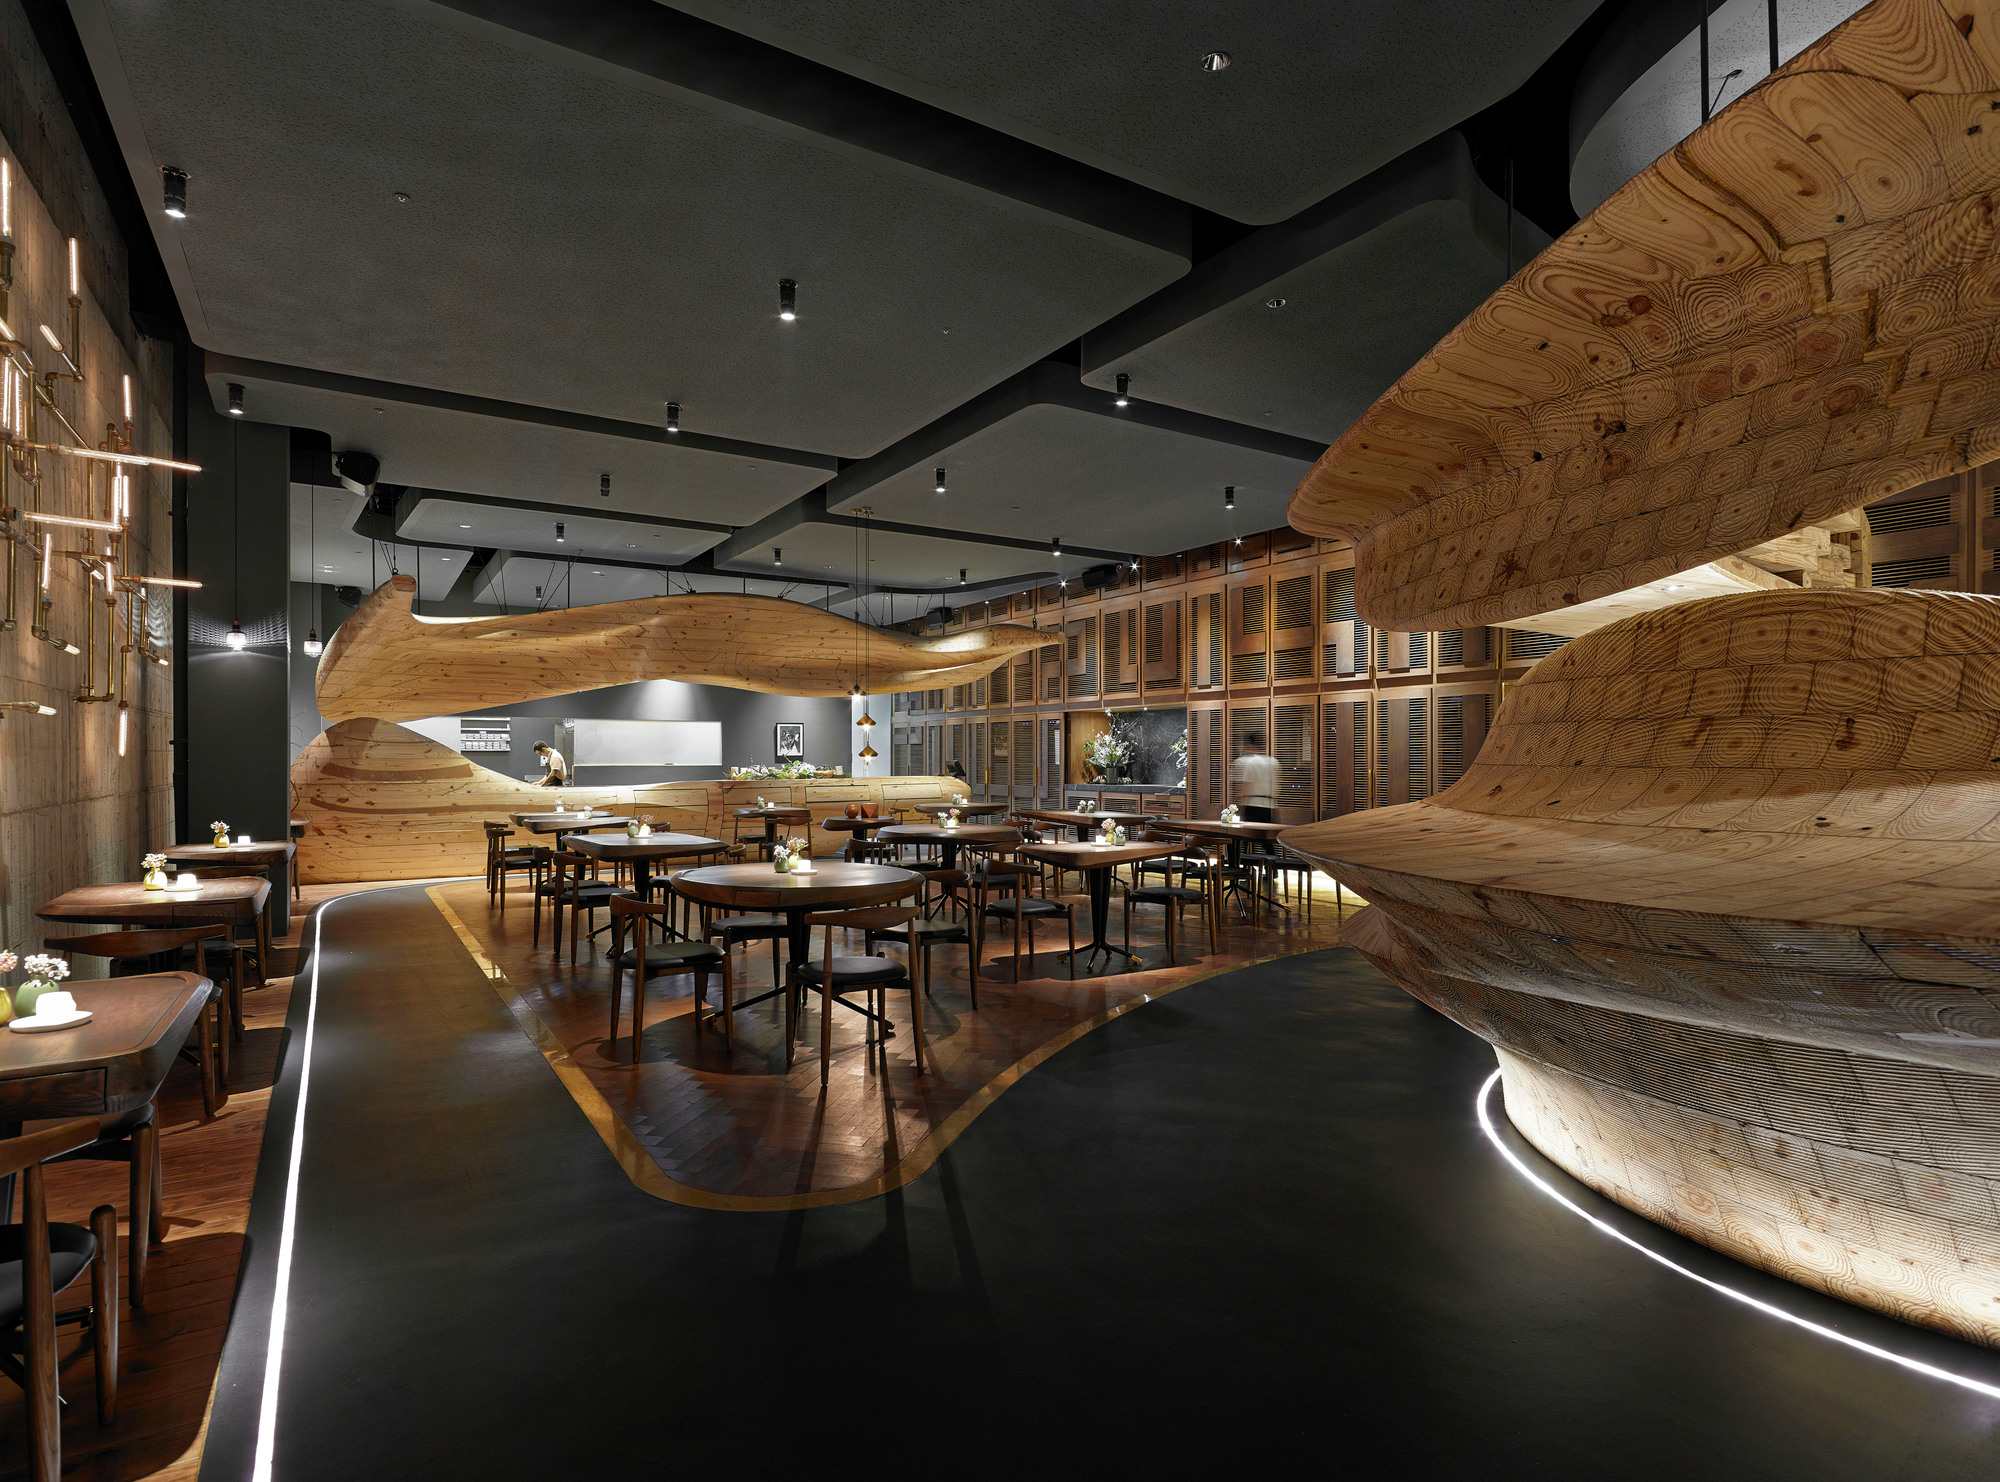 Gallery of restaurant bar design award winners